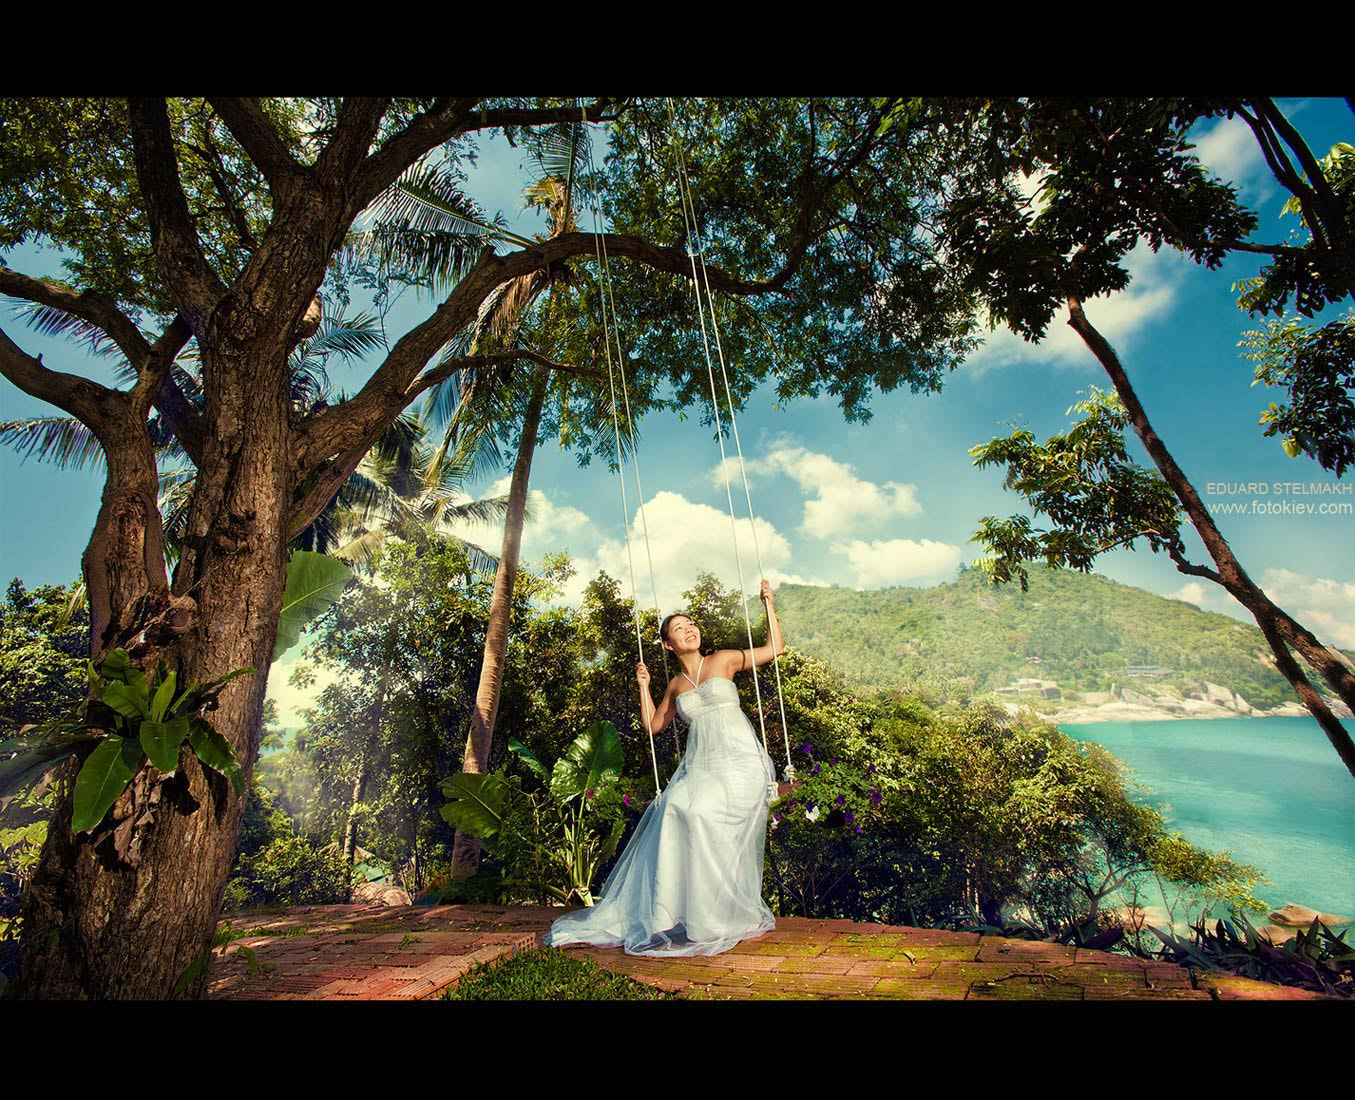 Photograph WEDDING STORY. SAMUI by Eduard Stelmakh on 500px